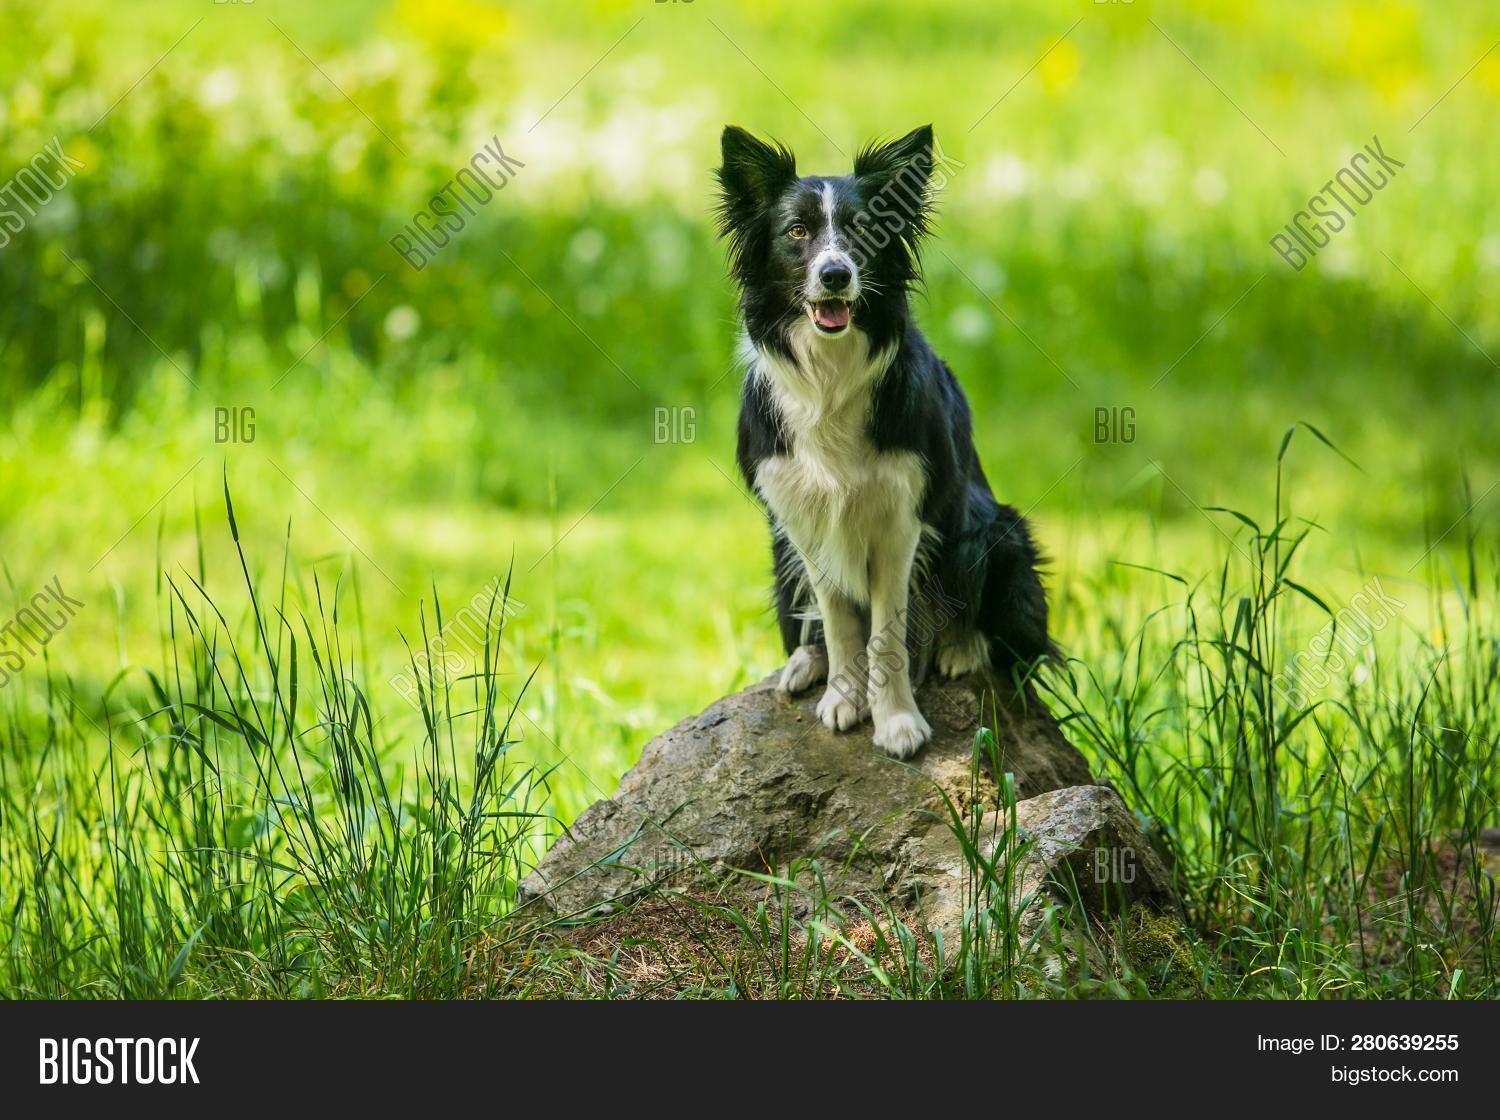 adorable,and,animal,background,black,border,breed,brown,collie,cute,day,dog,domestic,face,flowers,forest,fur,furry,grass,green,grey,ground,hot,meadow,mouth,nature,open,outdoor,outside,park,pet,piece,pink,portrait,purebred,rock,shadow,sitting,spring,stone,summer,sunlight,sunny,tongue,trees,waiting,watching,white,young